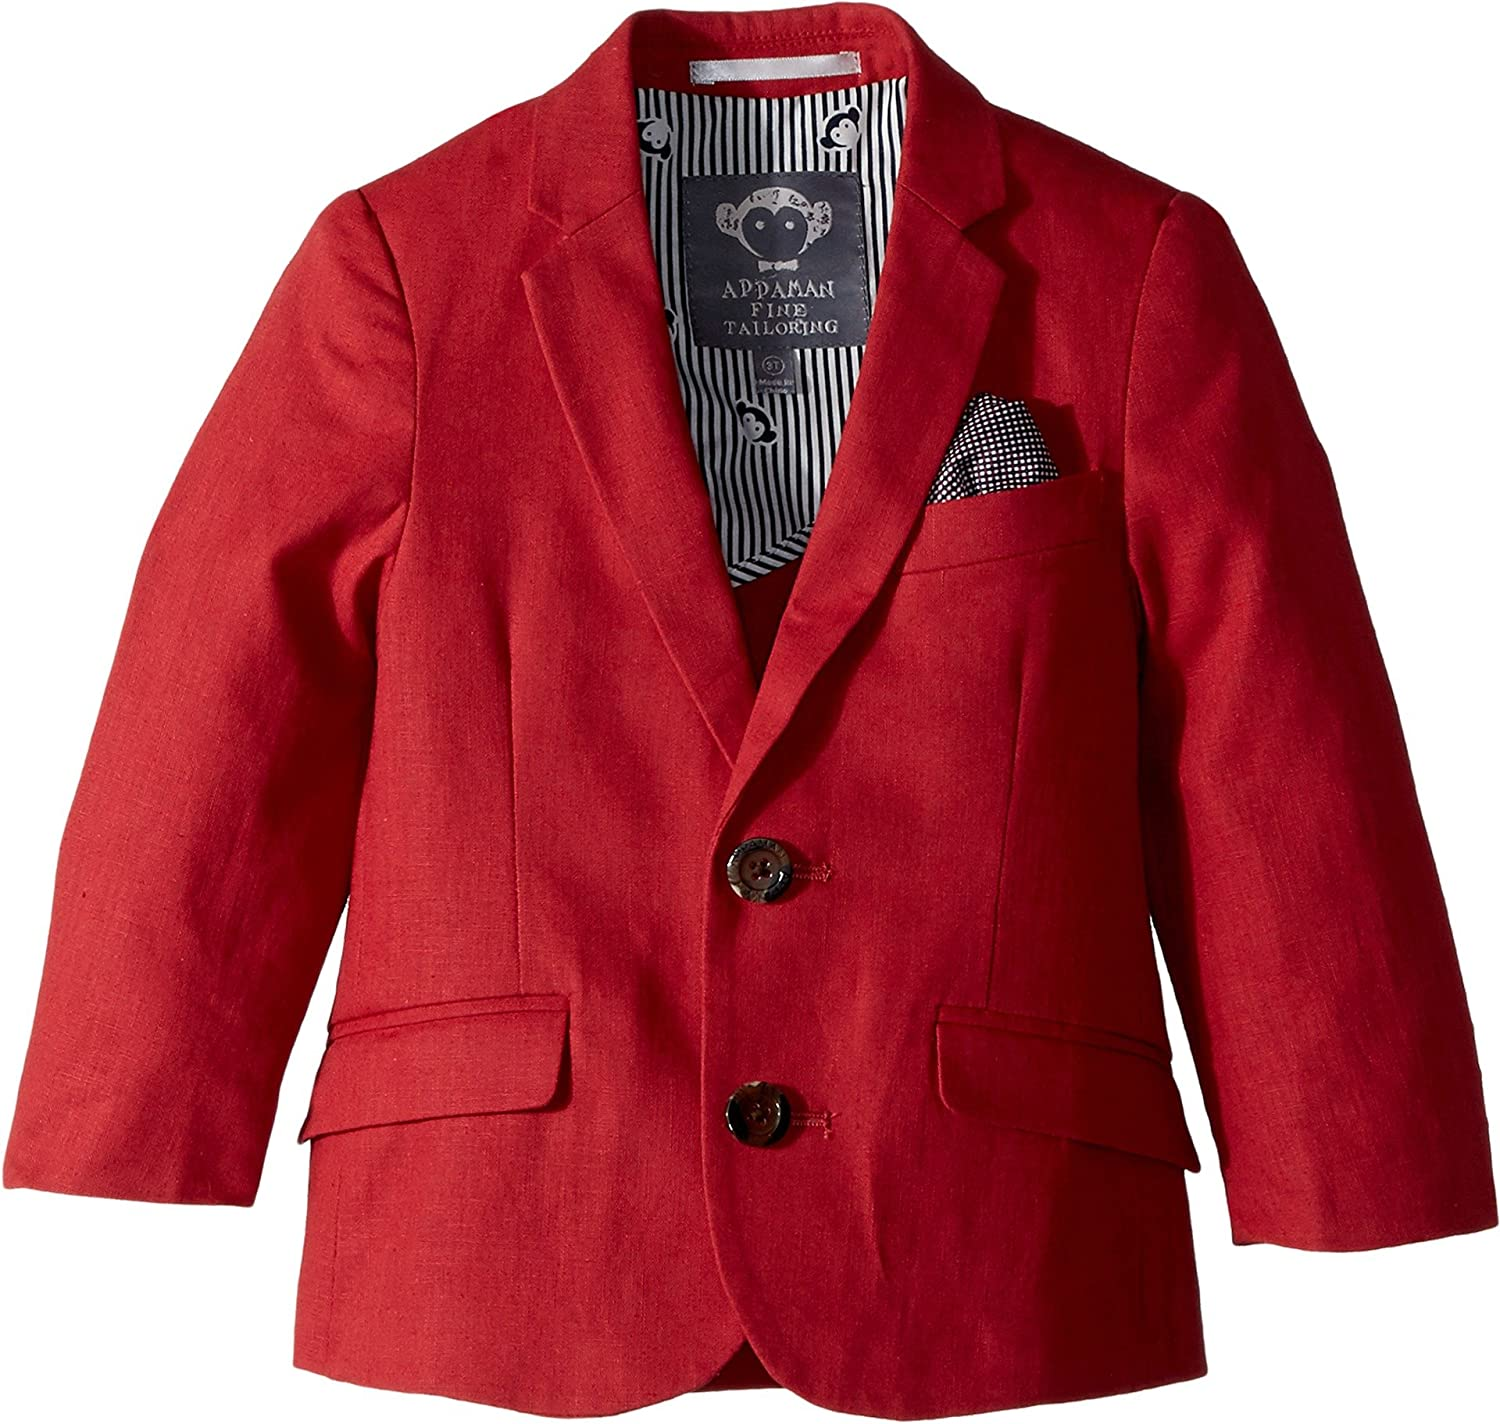 Appaman Kids Mens Structured Blazer with Pocket Detail (Toddler/Little Kids/Big Kids)